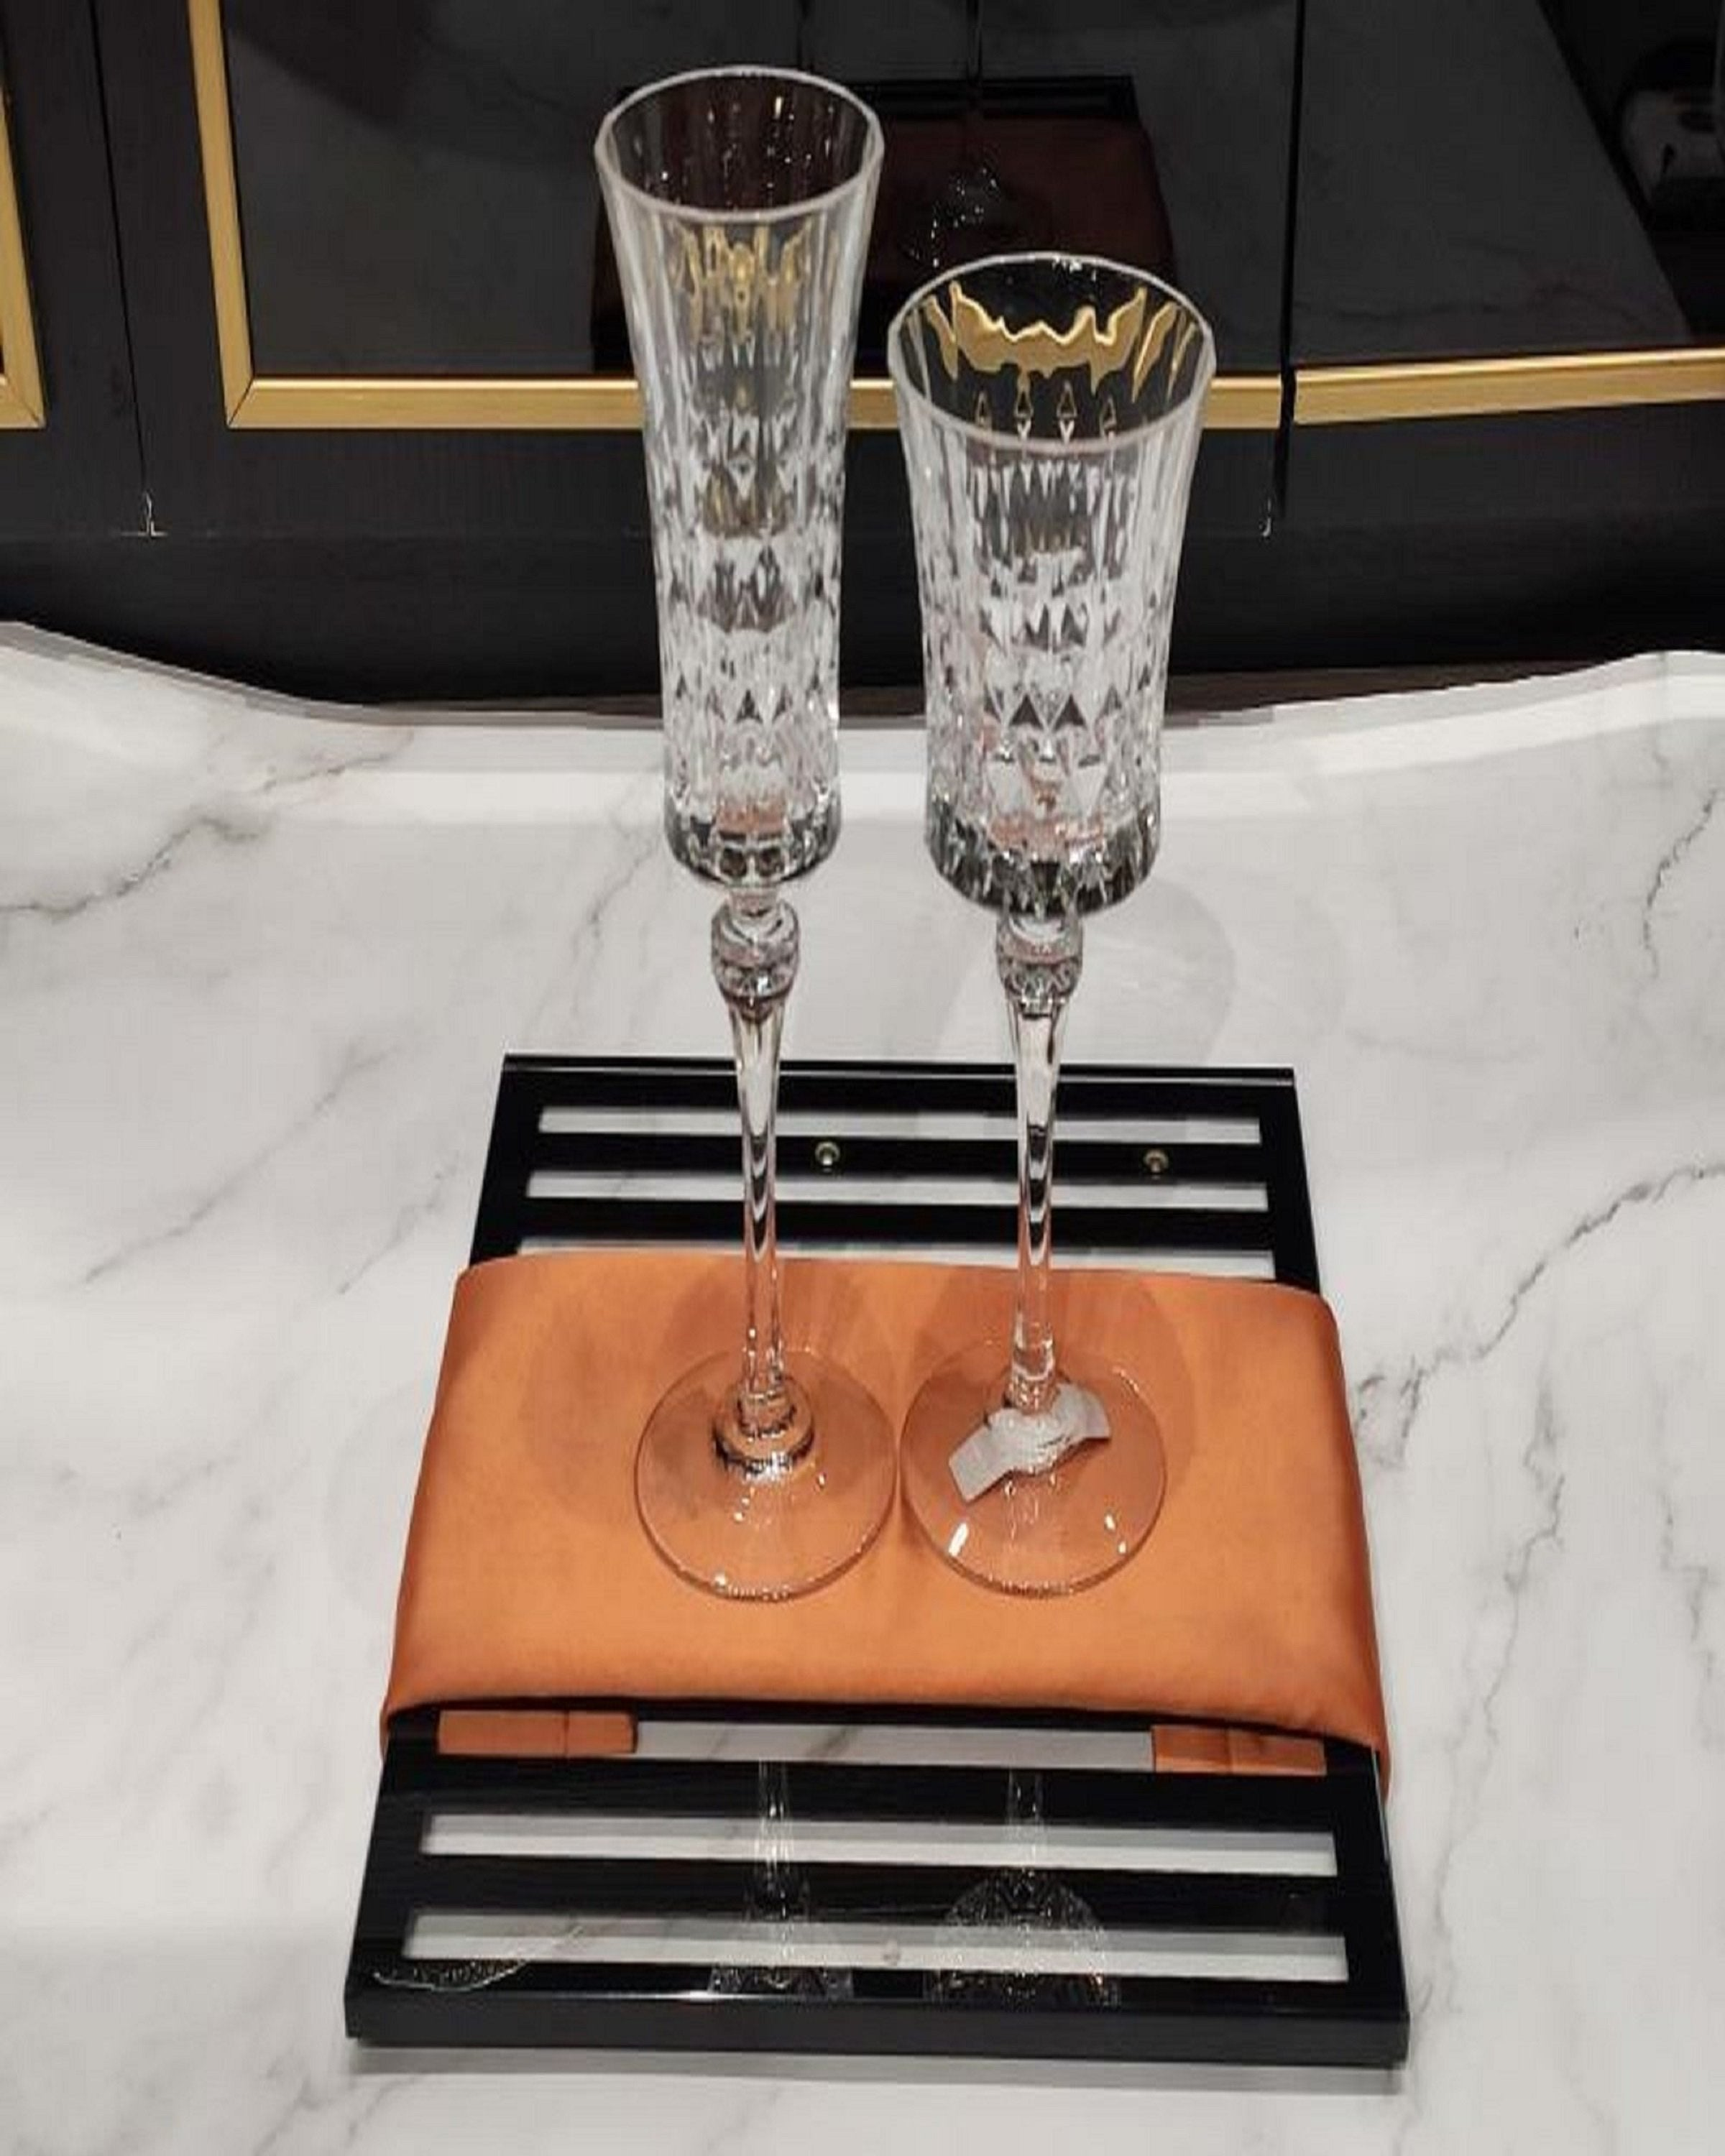 PERSOL CRYSTAL WINE AND CHAMPAGNE GLASS ANGIE HOMES